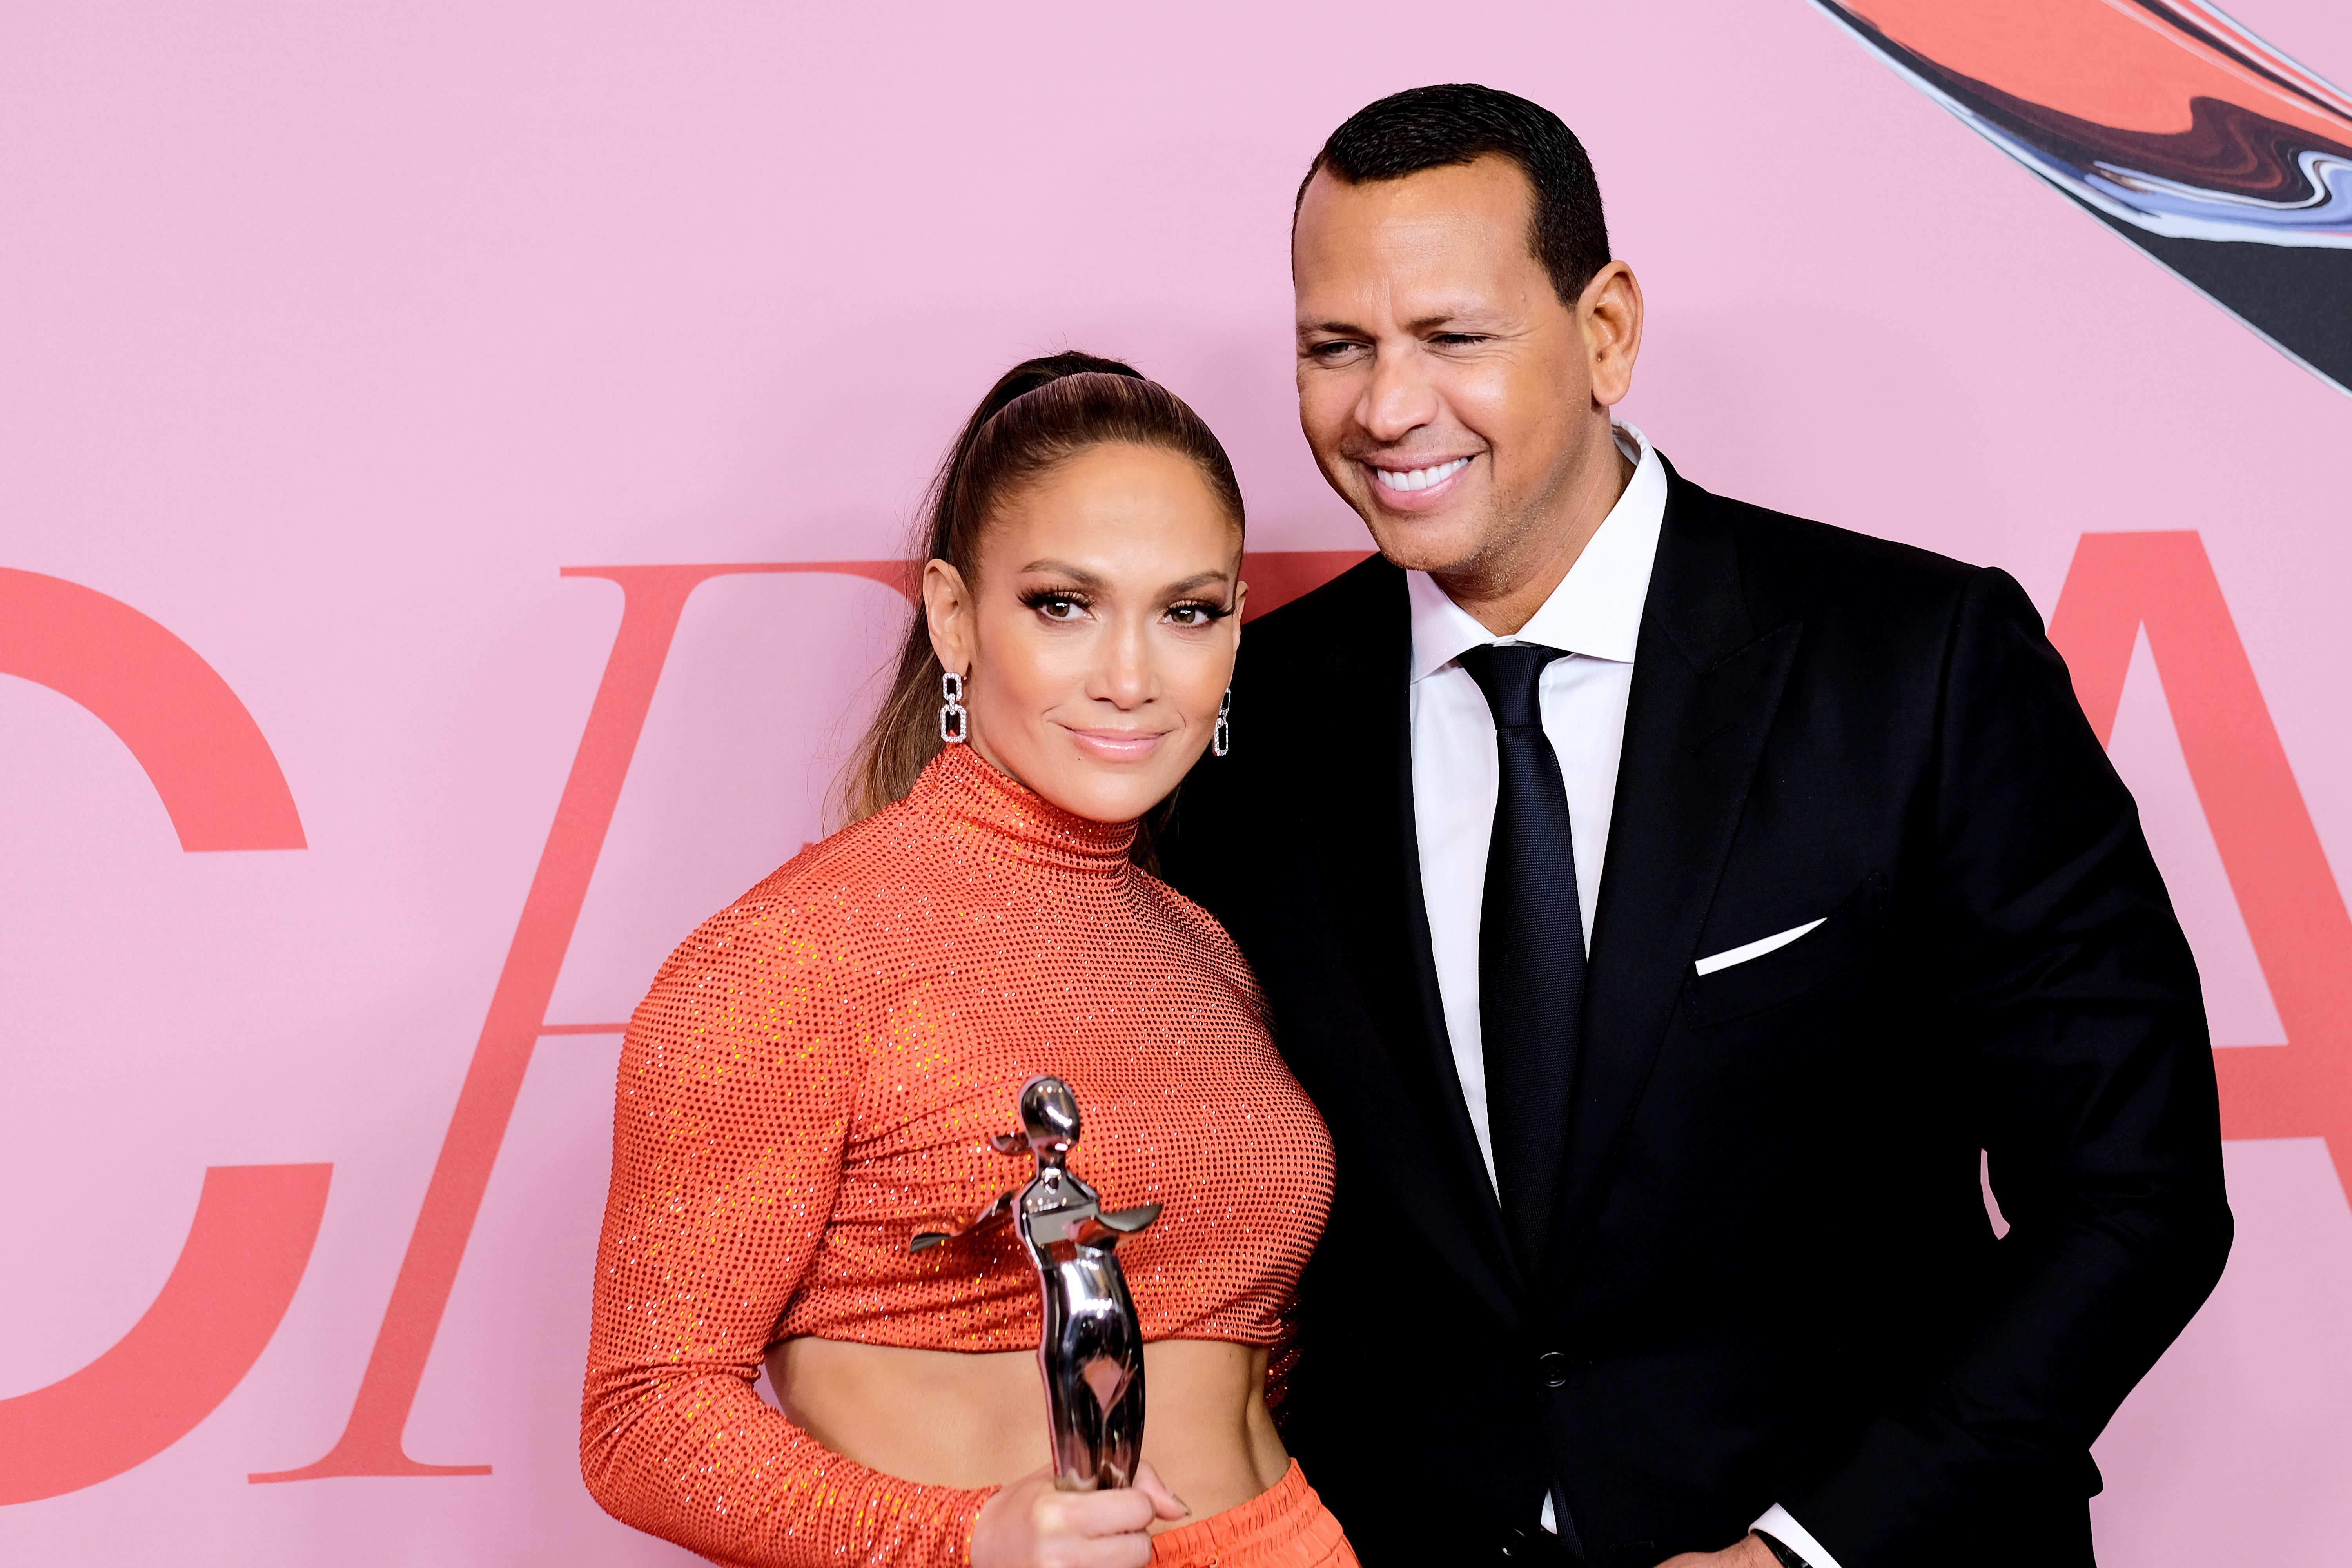 Jennifer Lopez poses with the Fashion Icon Award and Alex Rodriguez during Winners Walk during the CFDA Fashion Awards on June 03, 2019, in New York City. | Source: Getty Images.